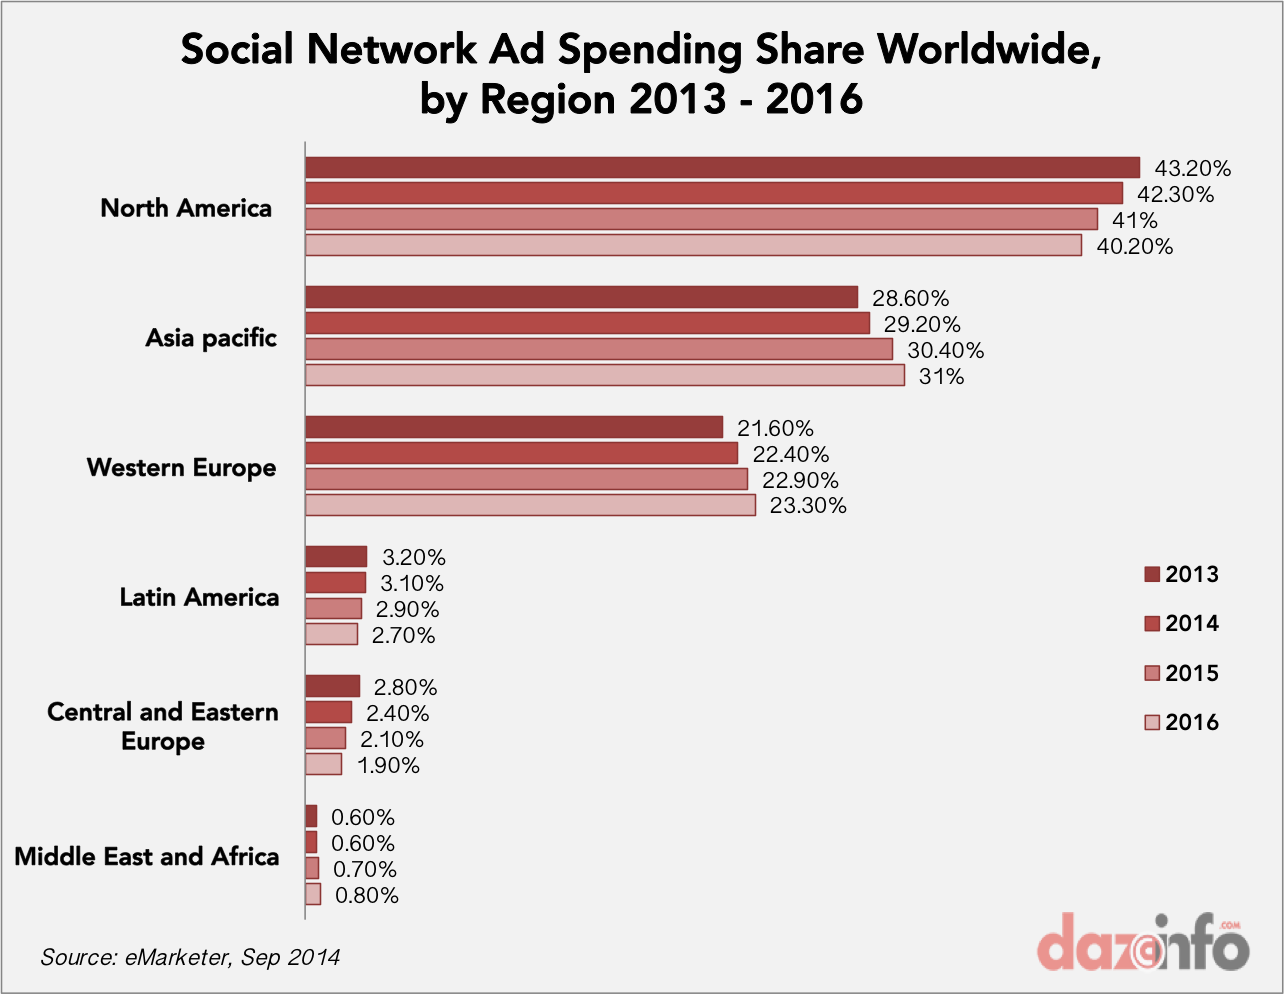 Worldwide Social Network Ad Spending share 2013 - 2016